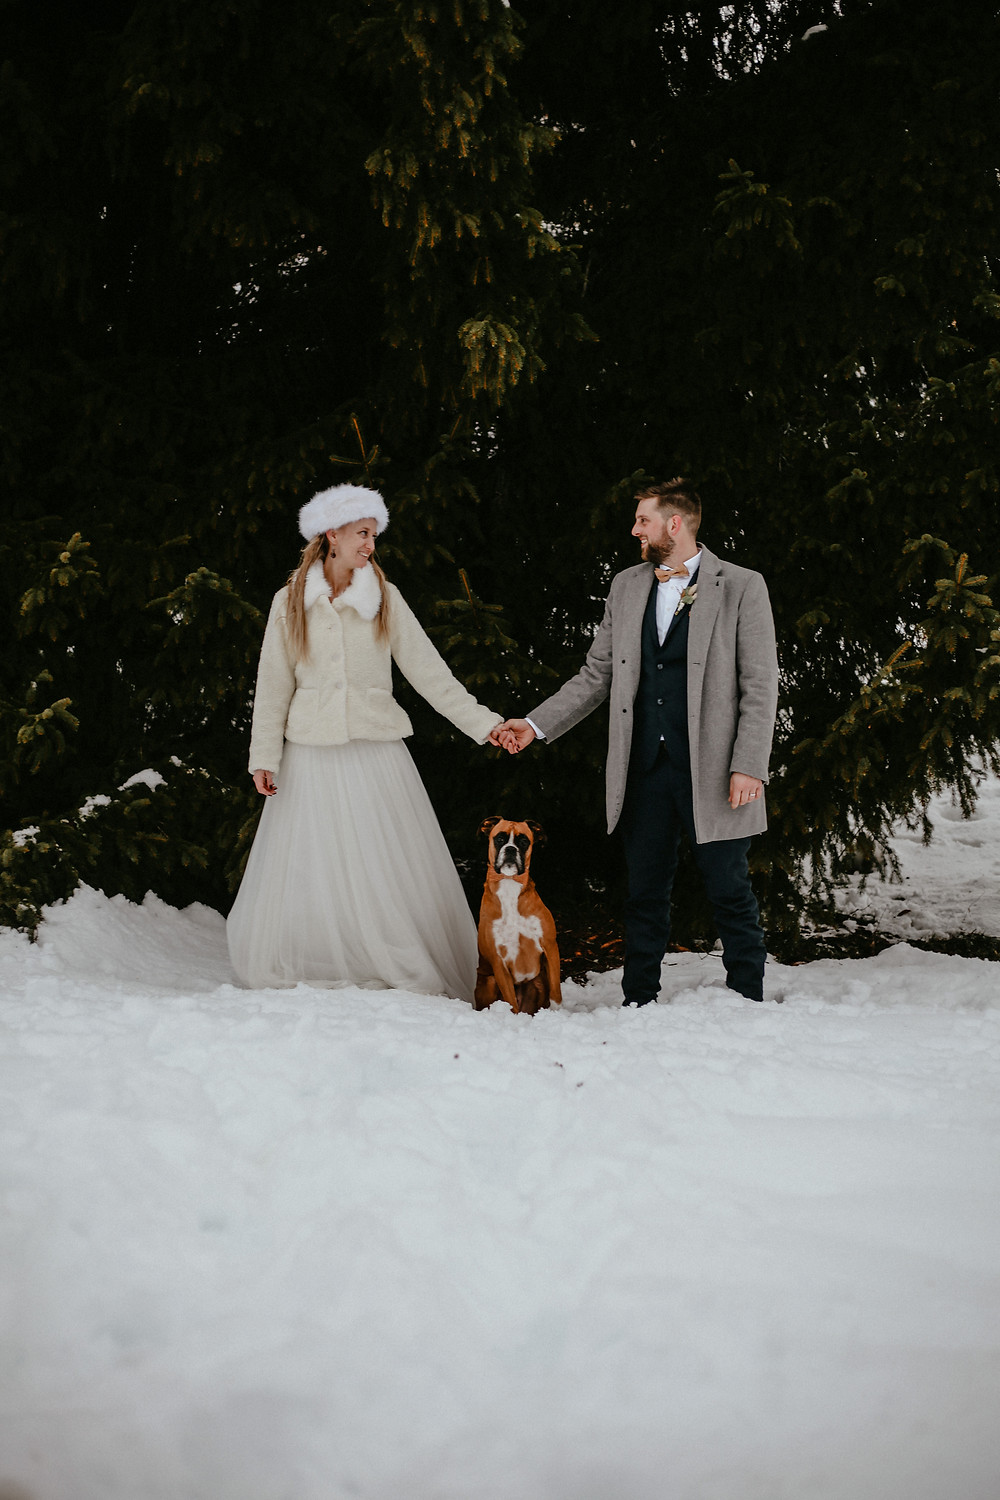 Mariage montagne, mariage hiver, mariage neige, mariage à la montagne, mariage winter, winter wedding, photographe mariage pas cher, photographe mariage lille, photographe mariage pas cher, photographe lille, mariage photo.